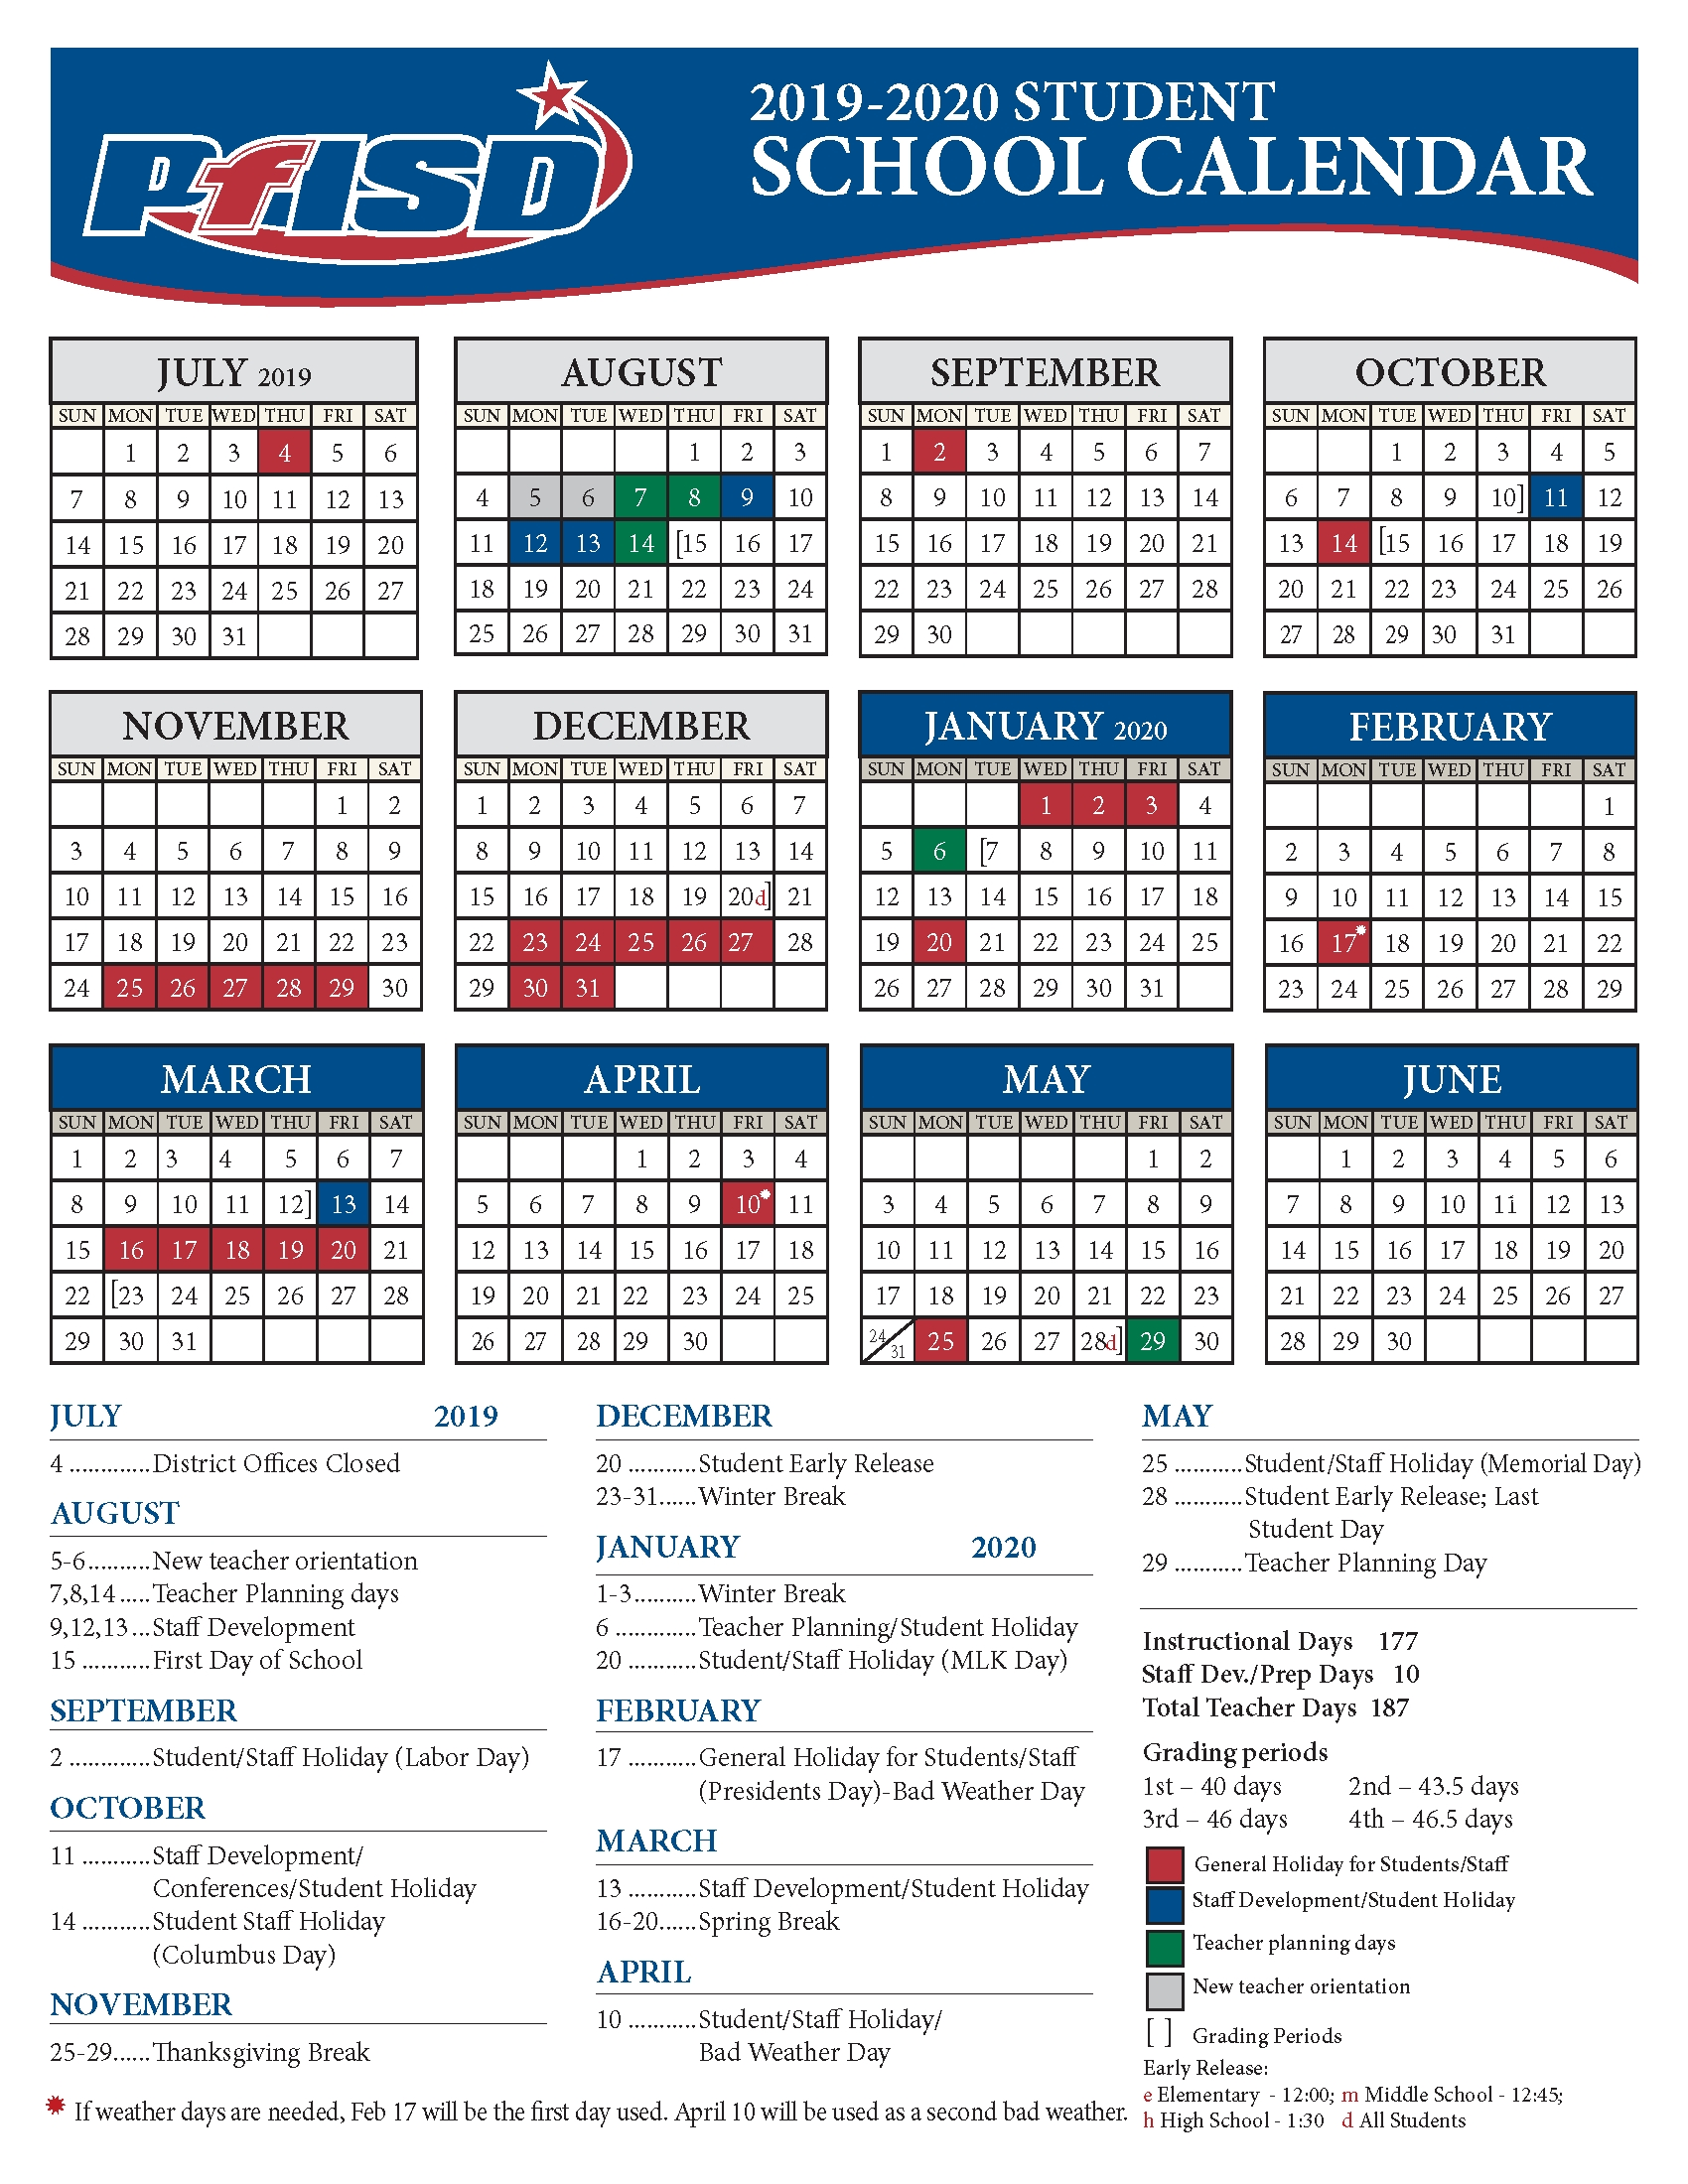 School Year Calendar / 2019-2020 District Calendar intended for Special Days In The School Year 2019-2020